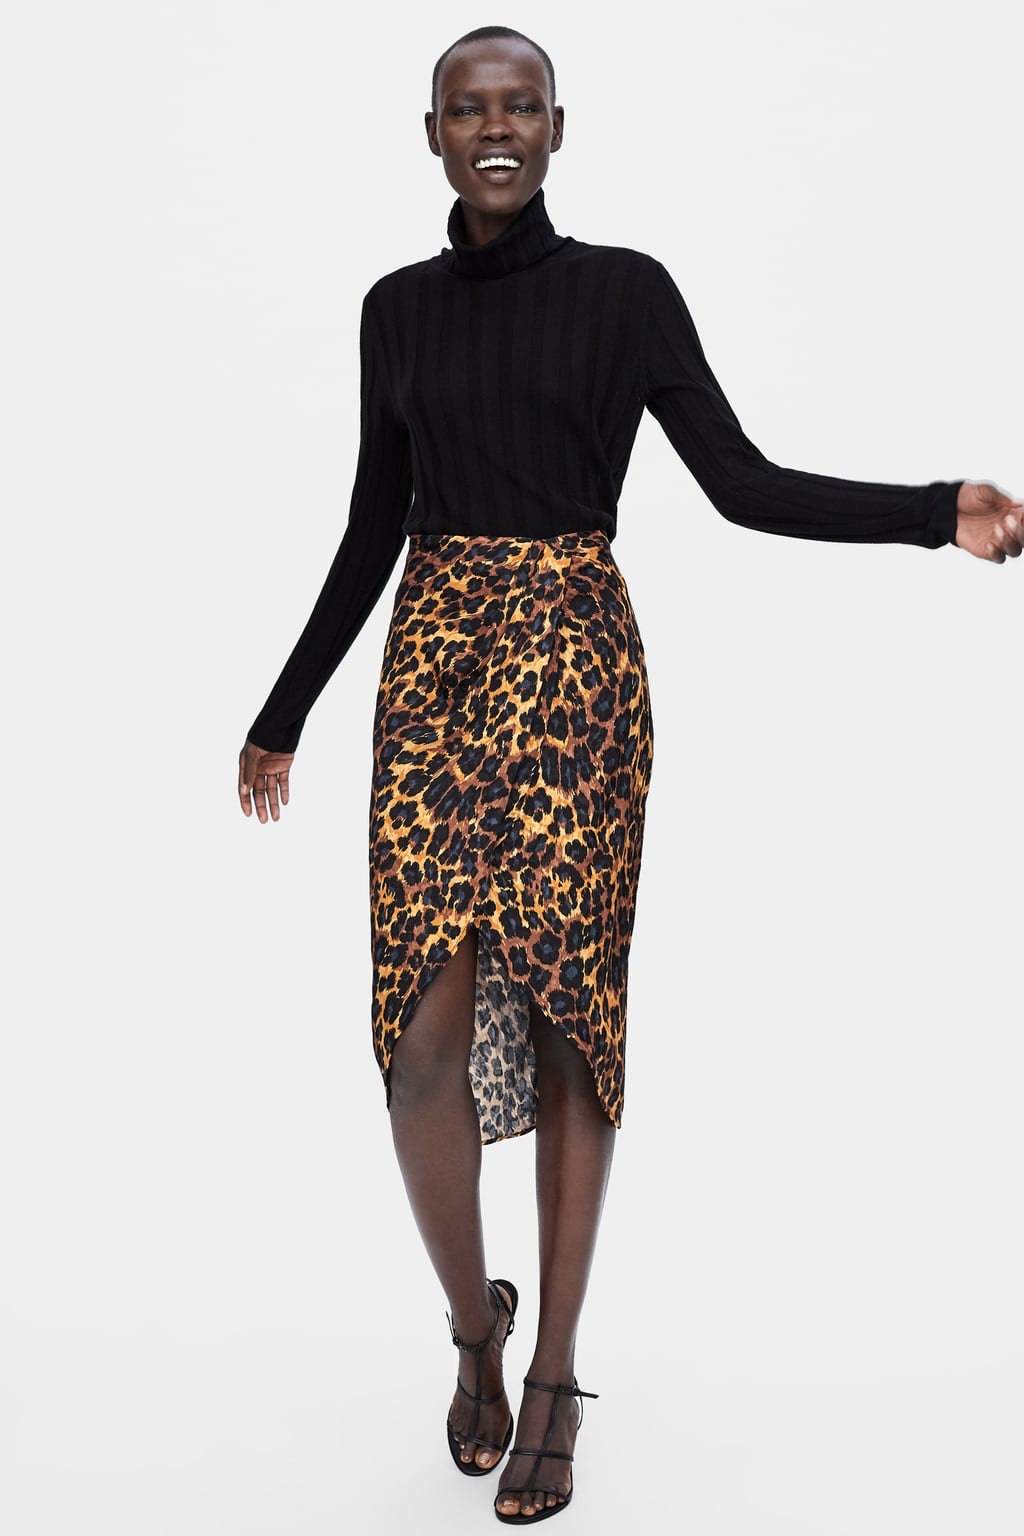 65cea971 11 Leopard Print Zara Dresses, Skirts, & More New Pieces Under $50 To Shop  From The Latest Arrivals